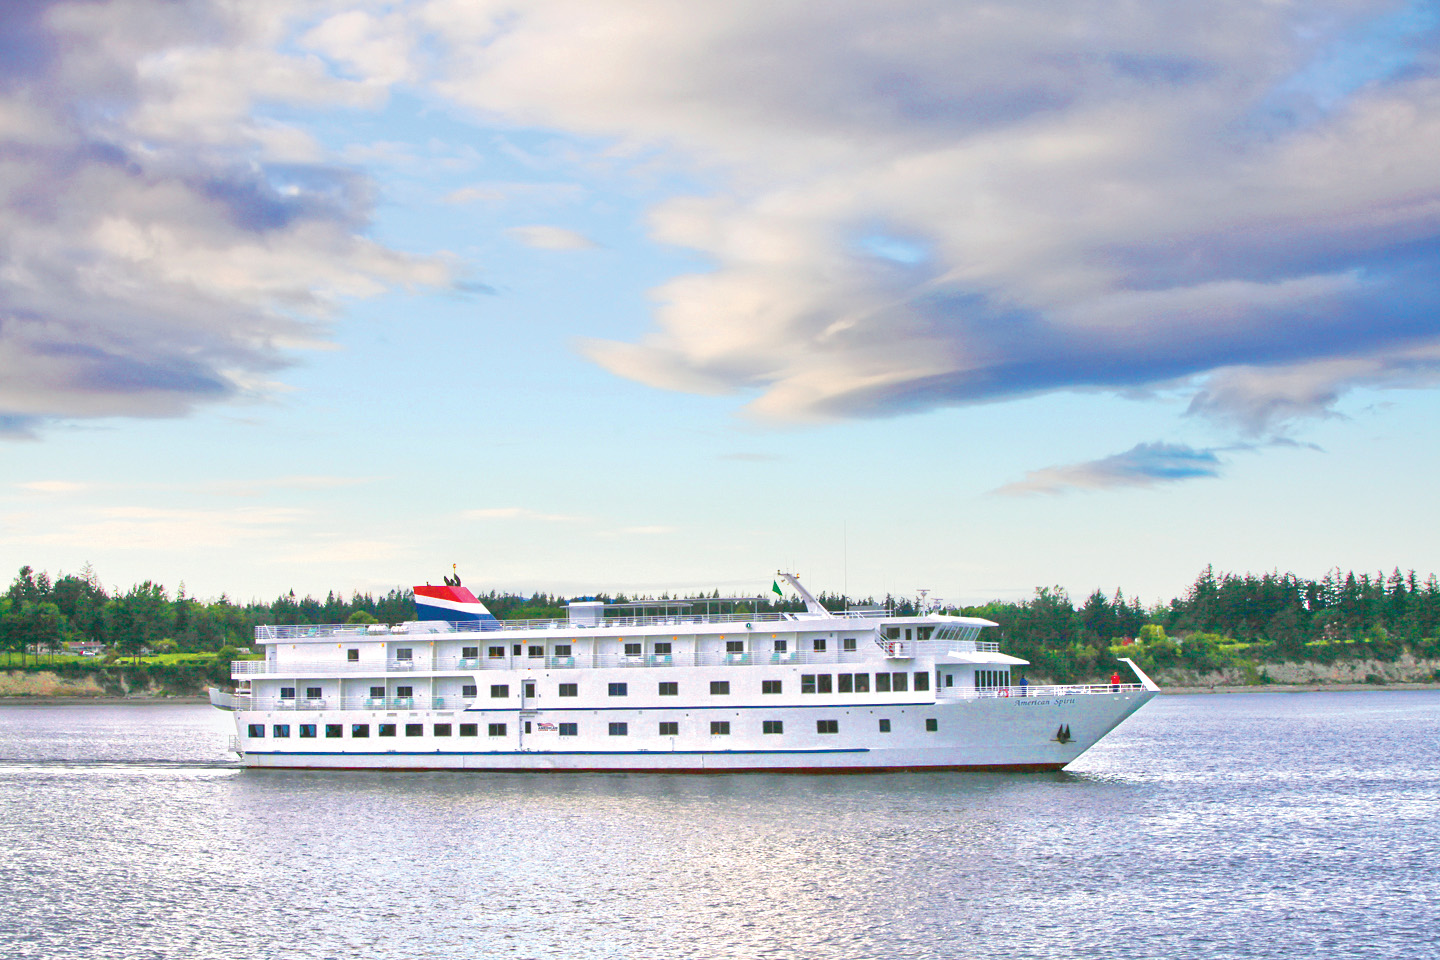 American Spirit in Anacortes. Photo by American Cruise Lines.